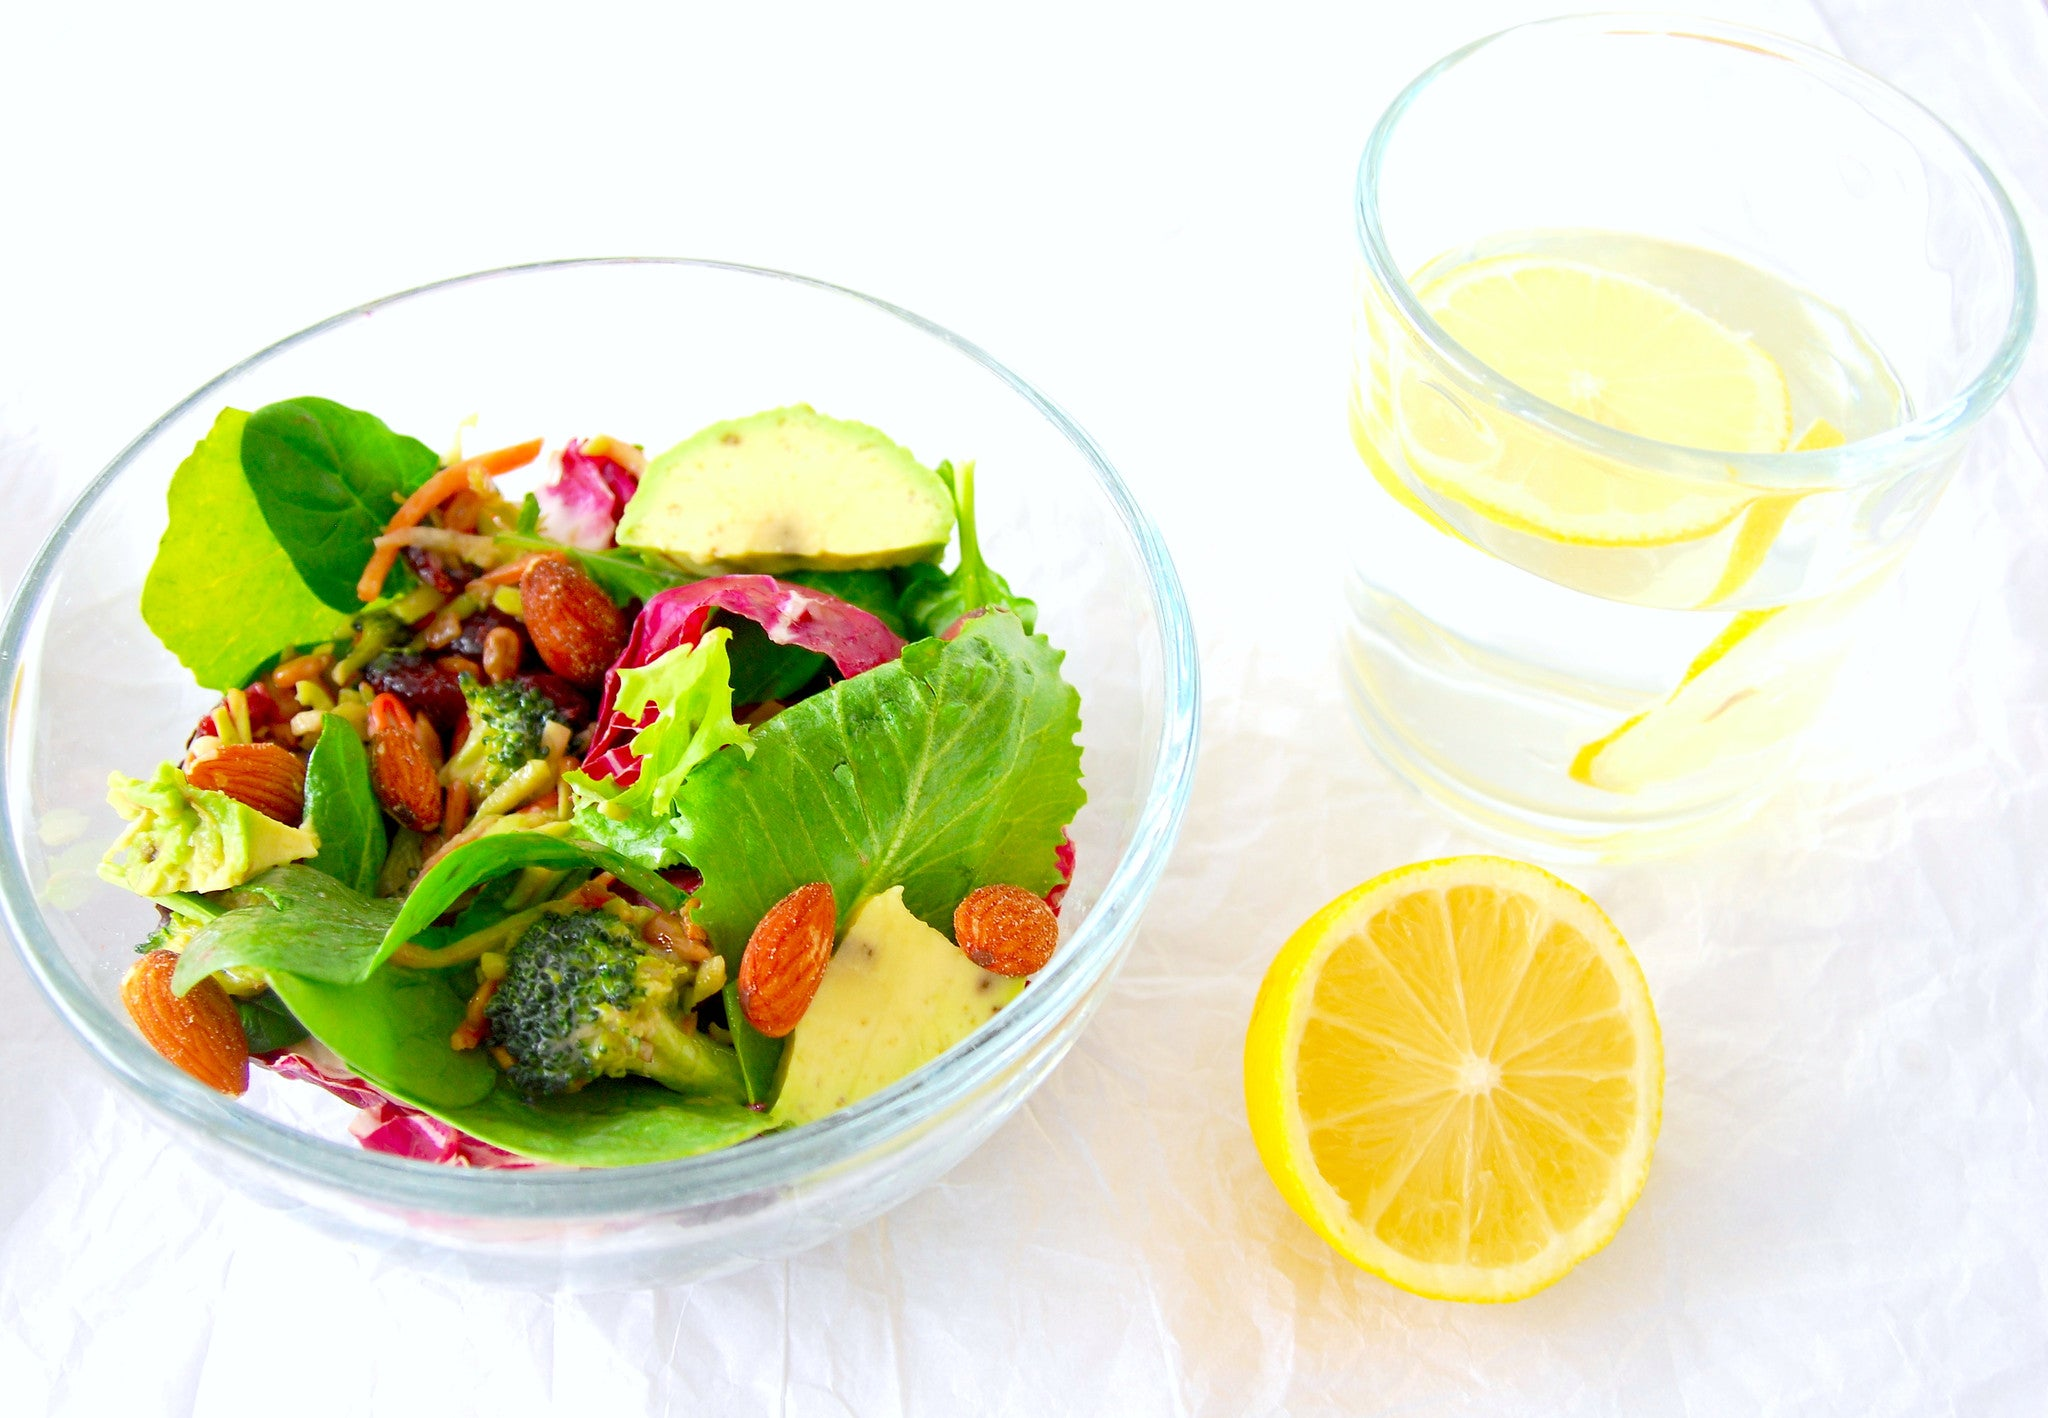 Tips for Post-Holiday Detoxing